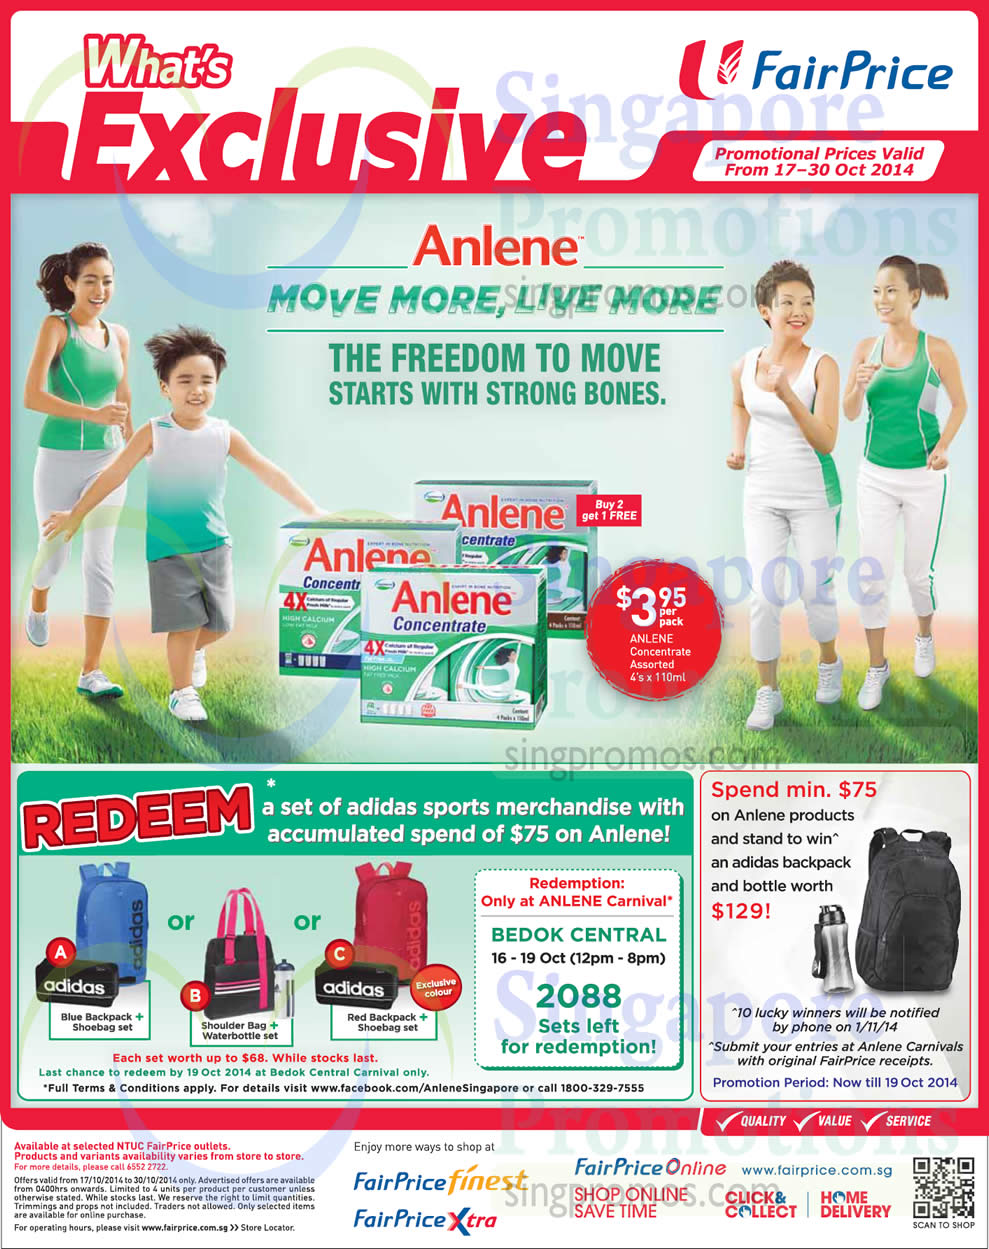 Oct Anlene Concentrate NTUC Fairprice Beauty Groceries - Deepavali special at the green furniture offers valid while stocks